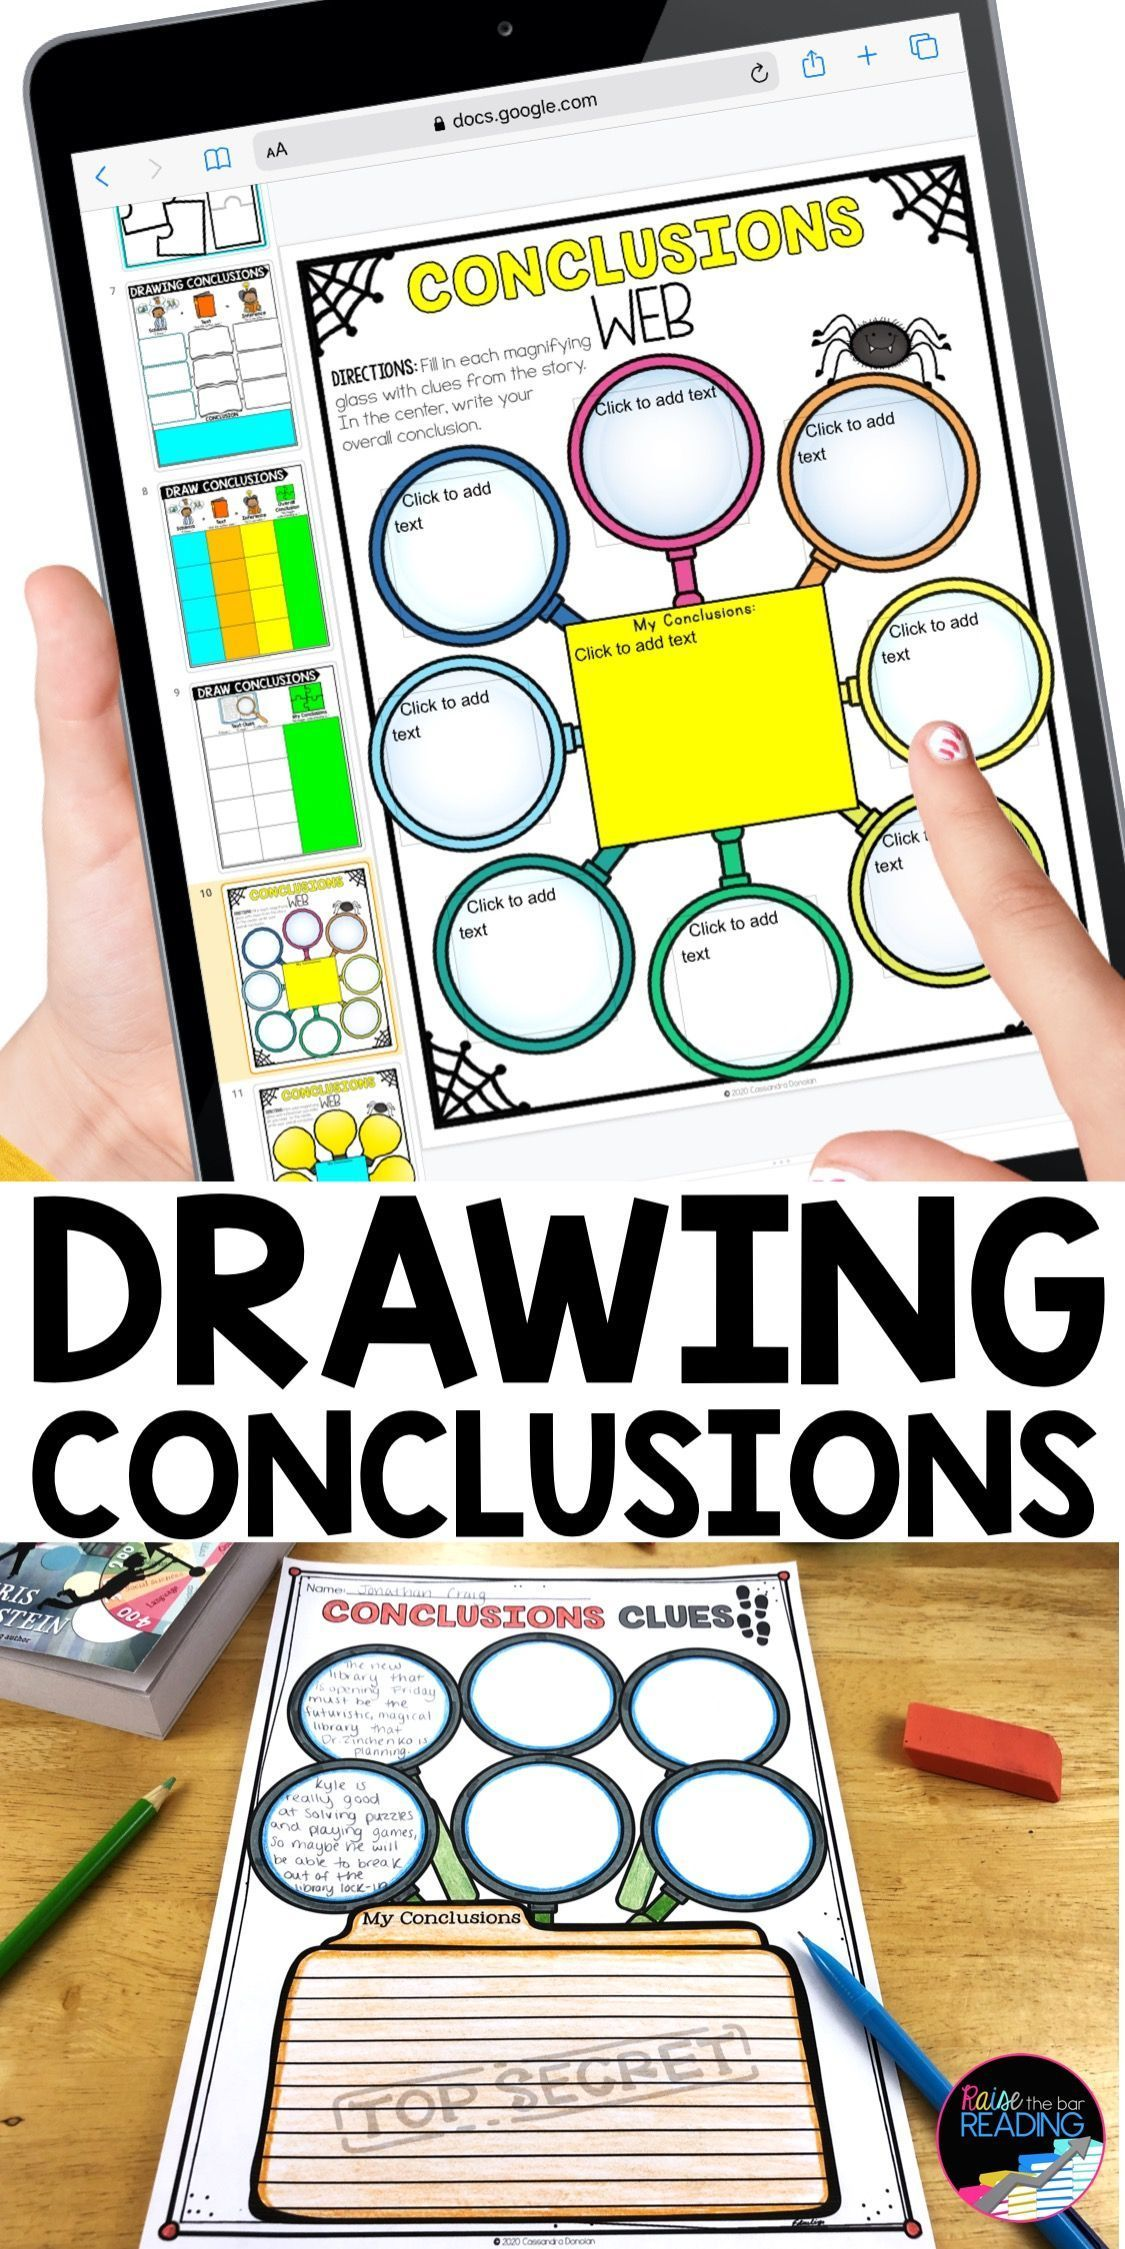 Drawing Conclusions Worksheets Paper Digital Reading Graphic Organizers Reading Graphic Organizers Graphic Organizers Teaching Reading Comprehension [ 2249 x 1125 Pixel ]